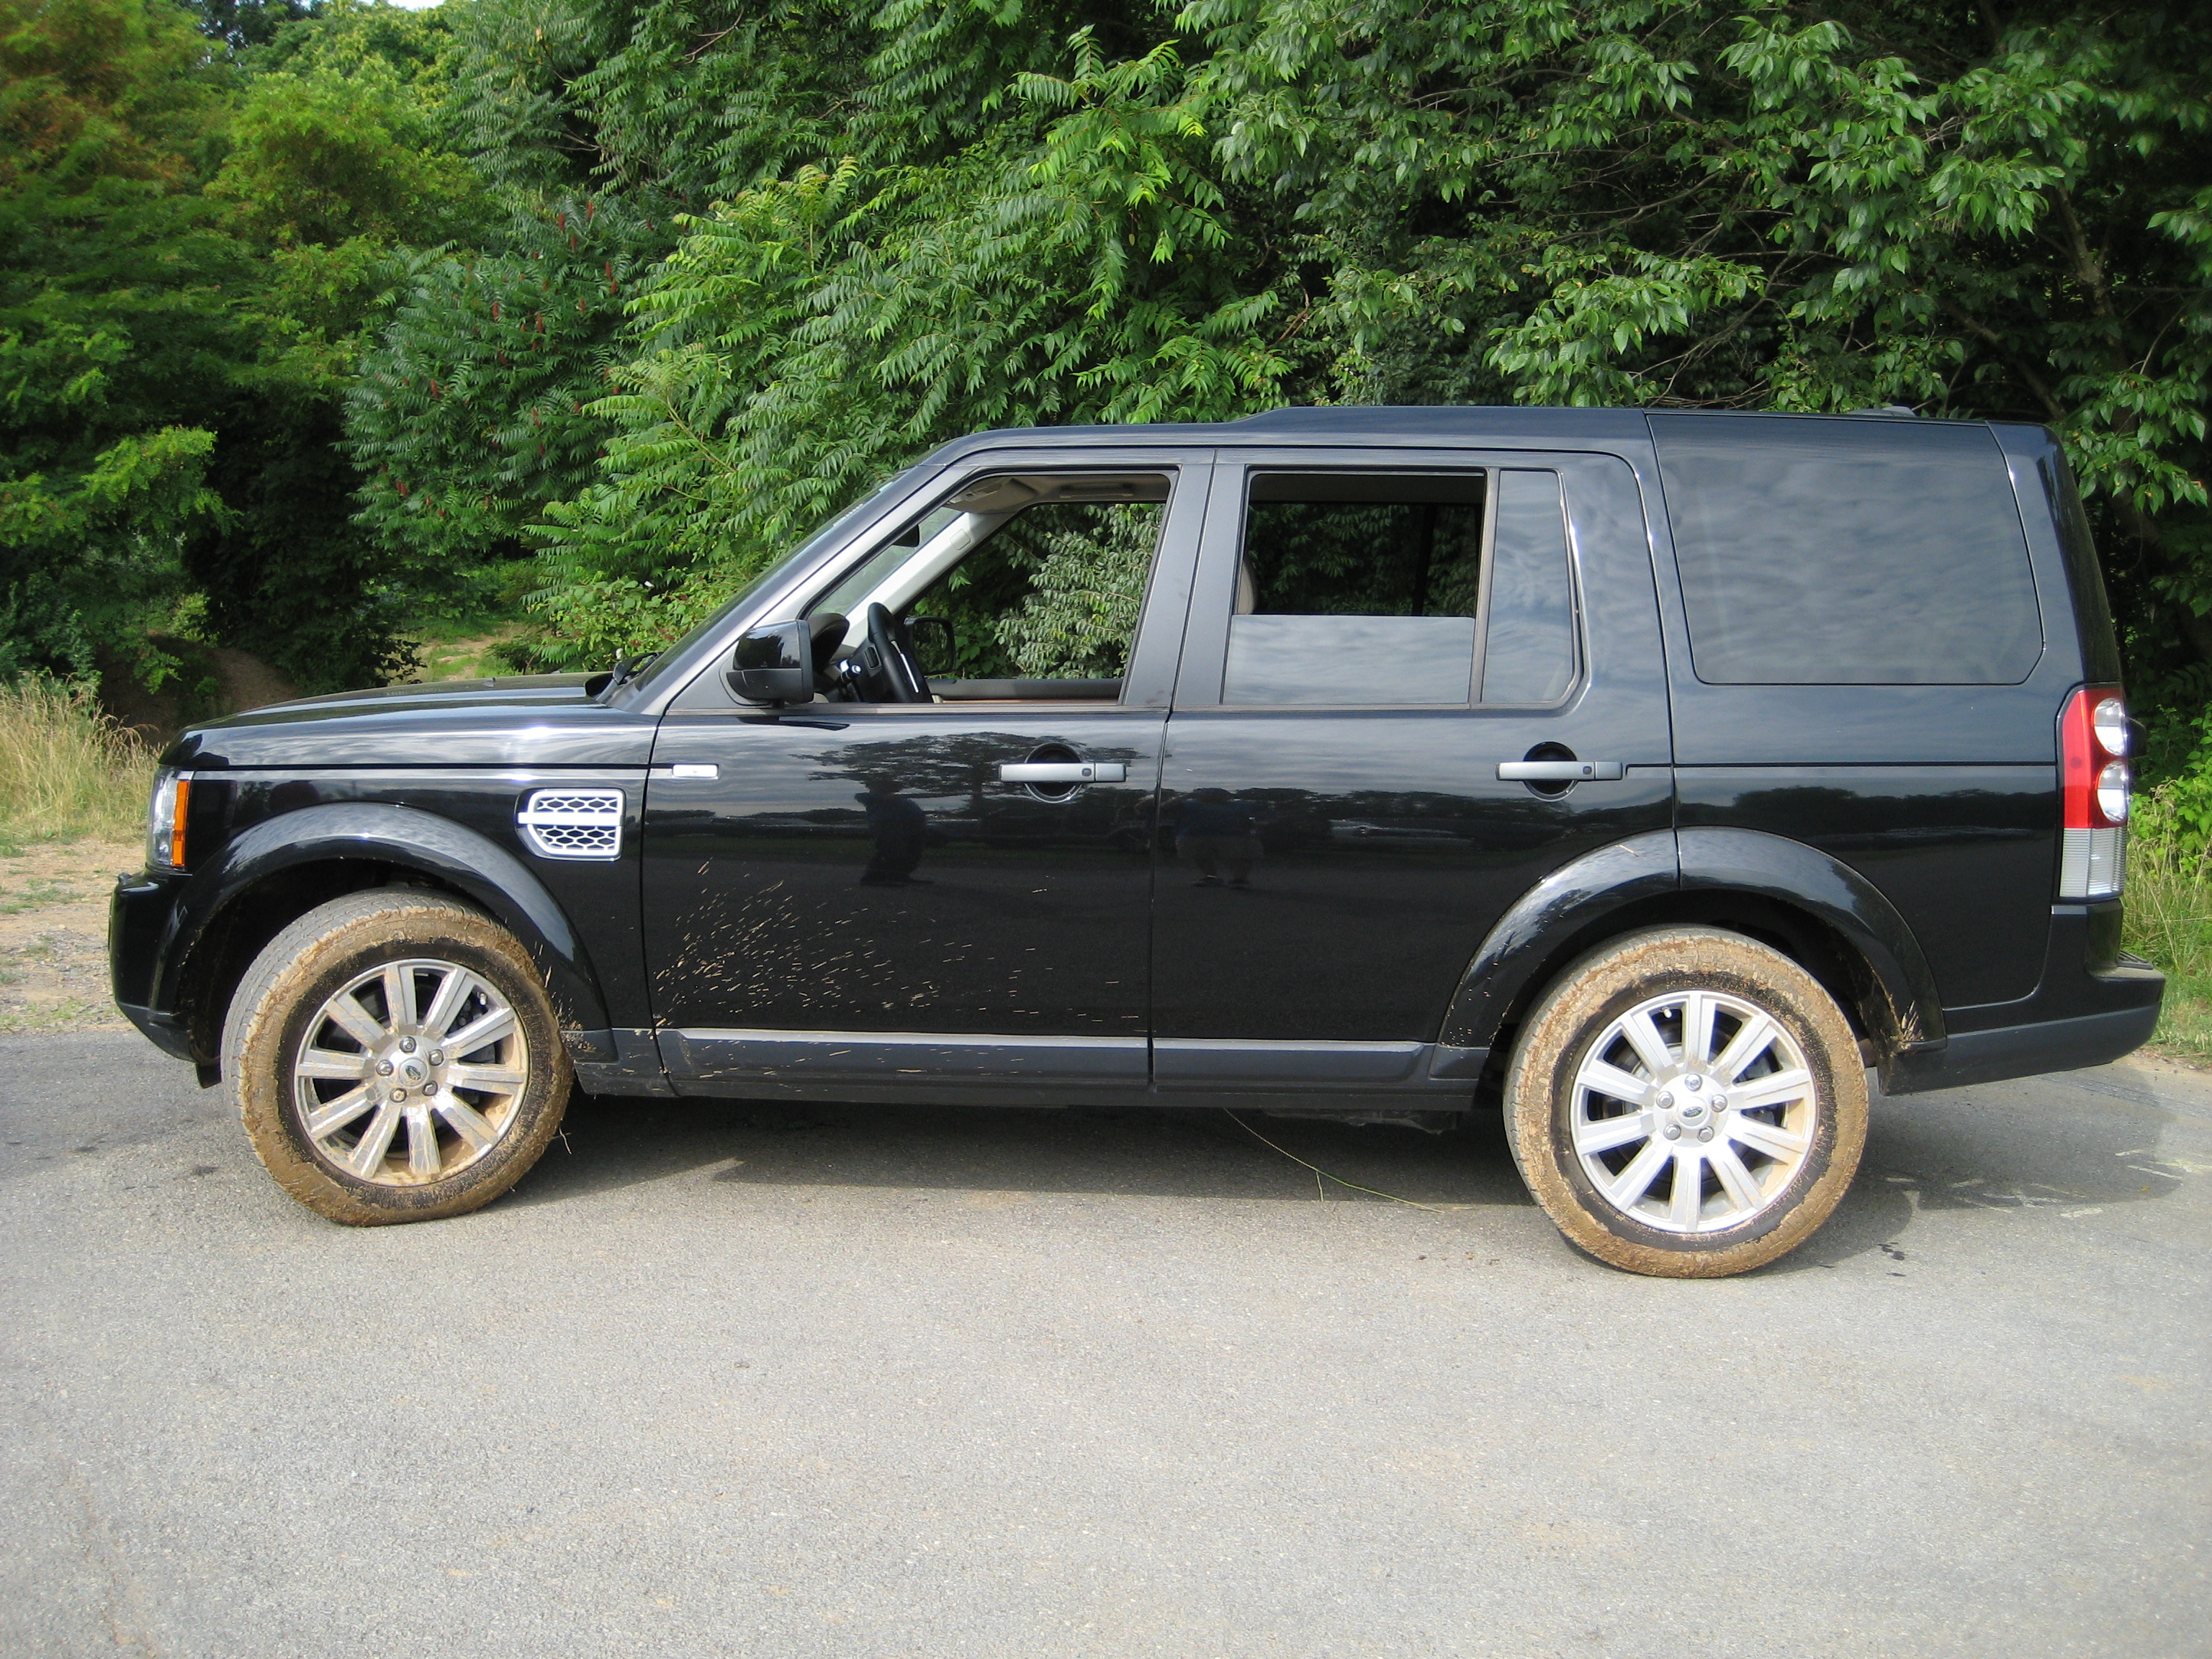 h and car review rover overview landrover the connection for range sale ratings specs prices photos land